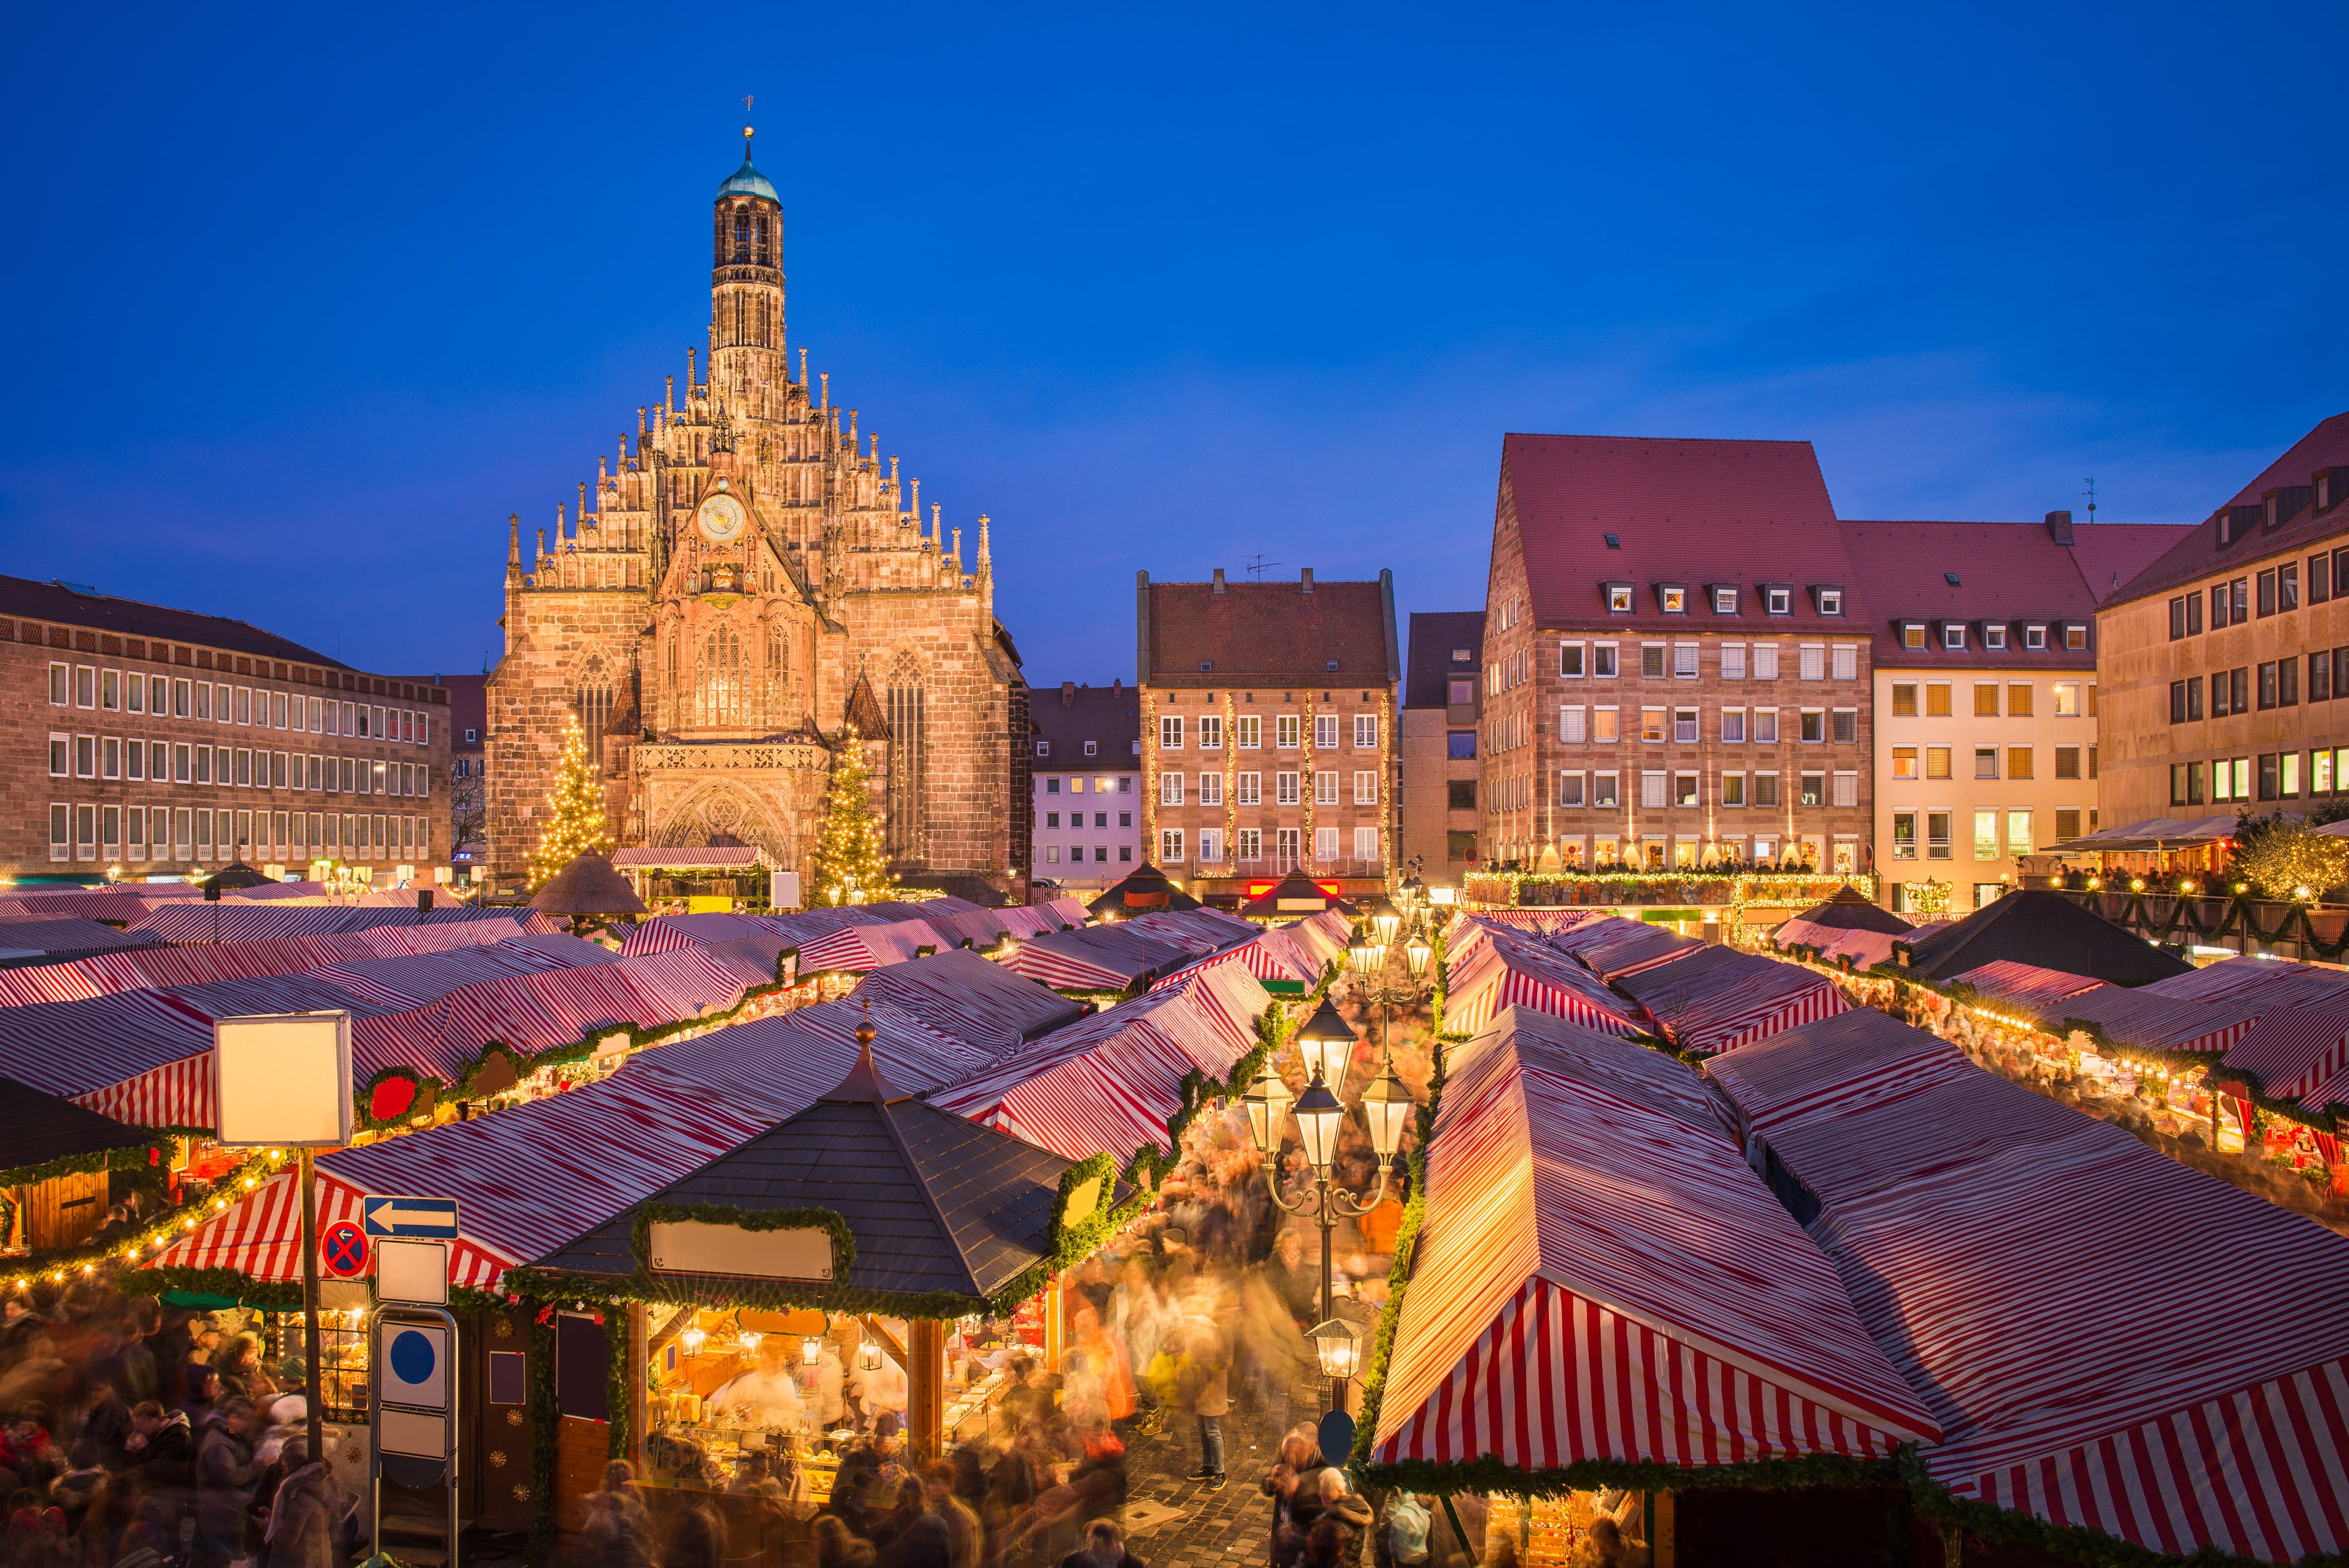 Christkindlesmarkt Christmas Market in Germany